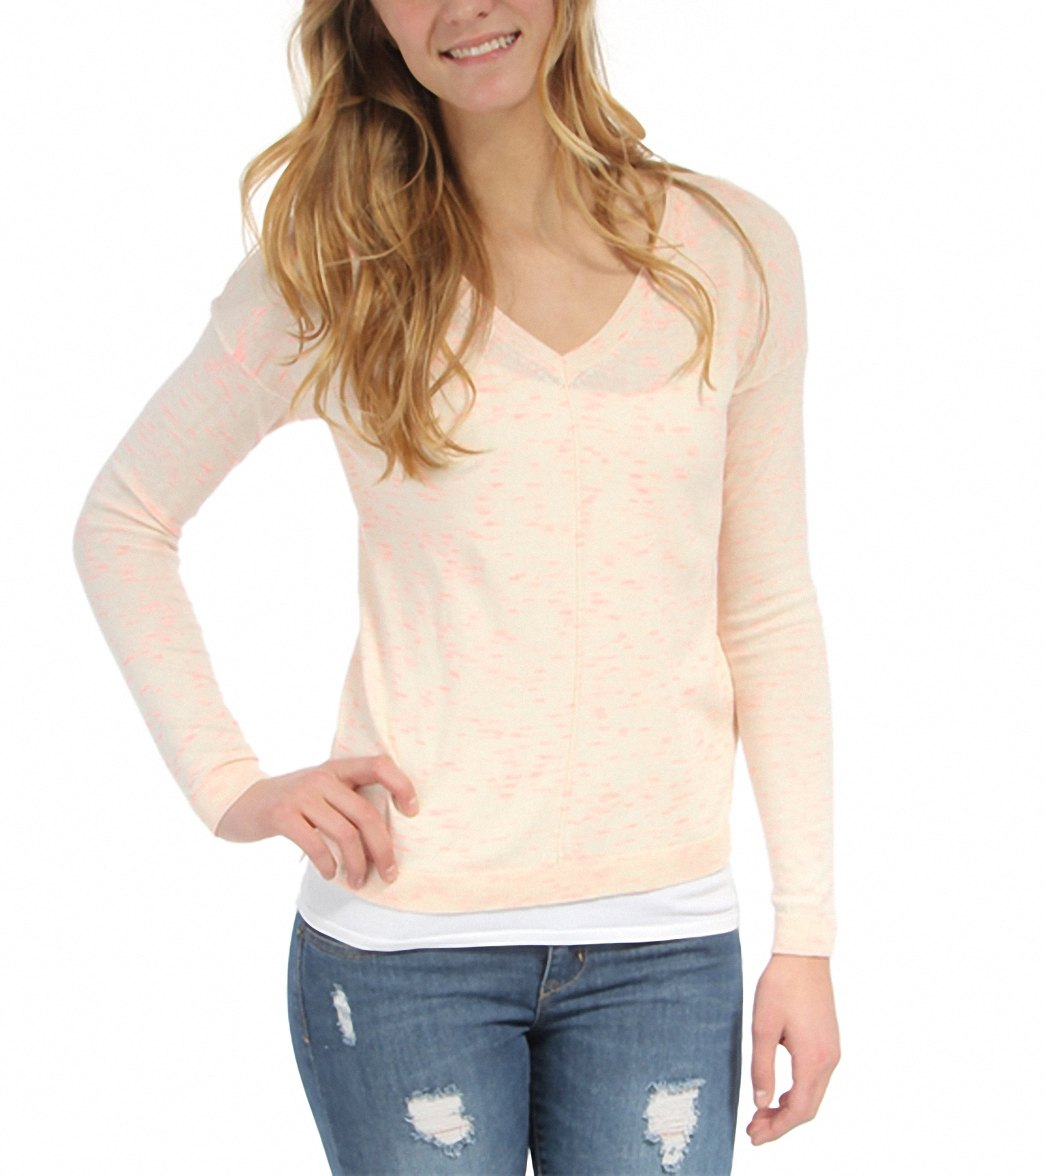 ad728befa0bea Roxy Bexley Sweater at SwimOutlet.com - Free Shipping